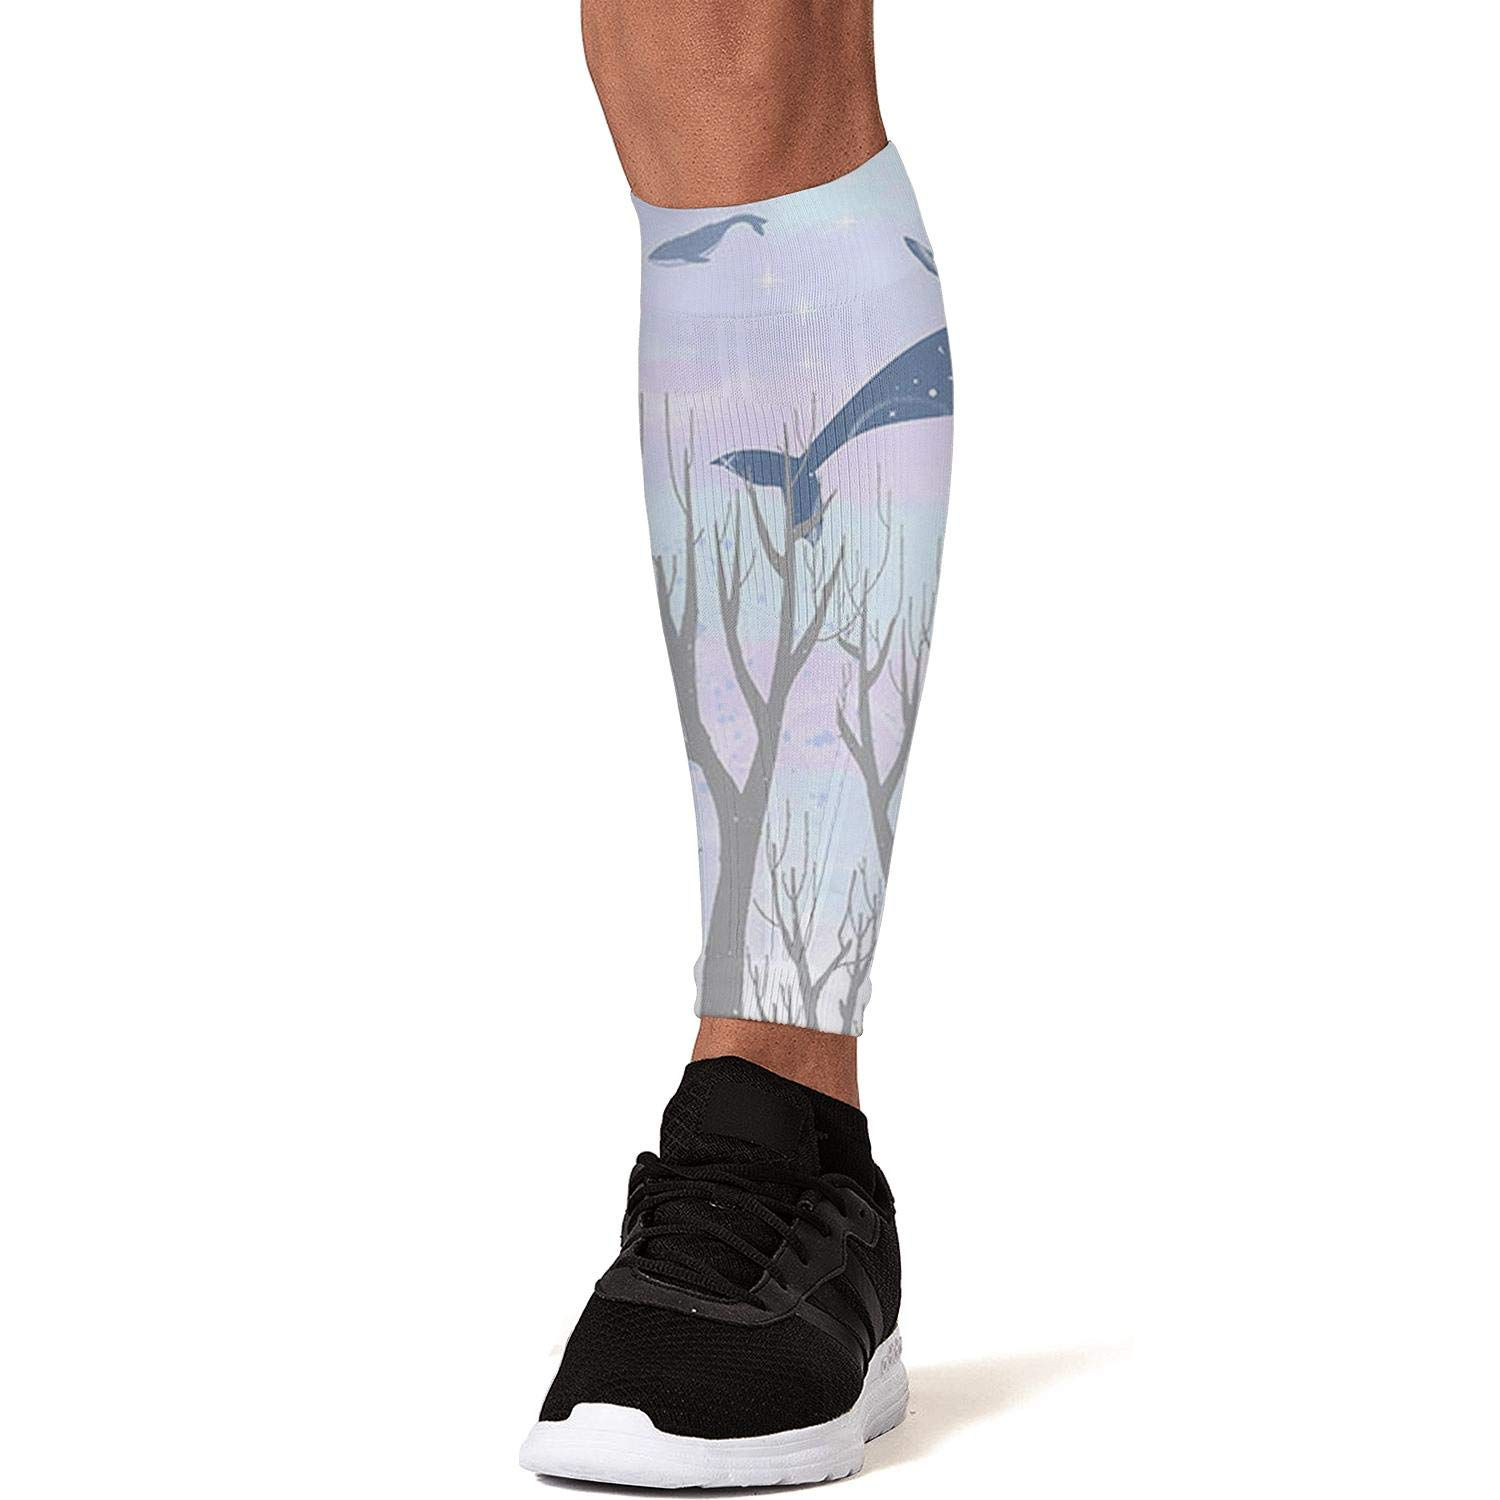 Smilelolly Whales Calf Compression Sleeves Helps Pain Relief Leg Sleeves for Men Women